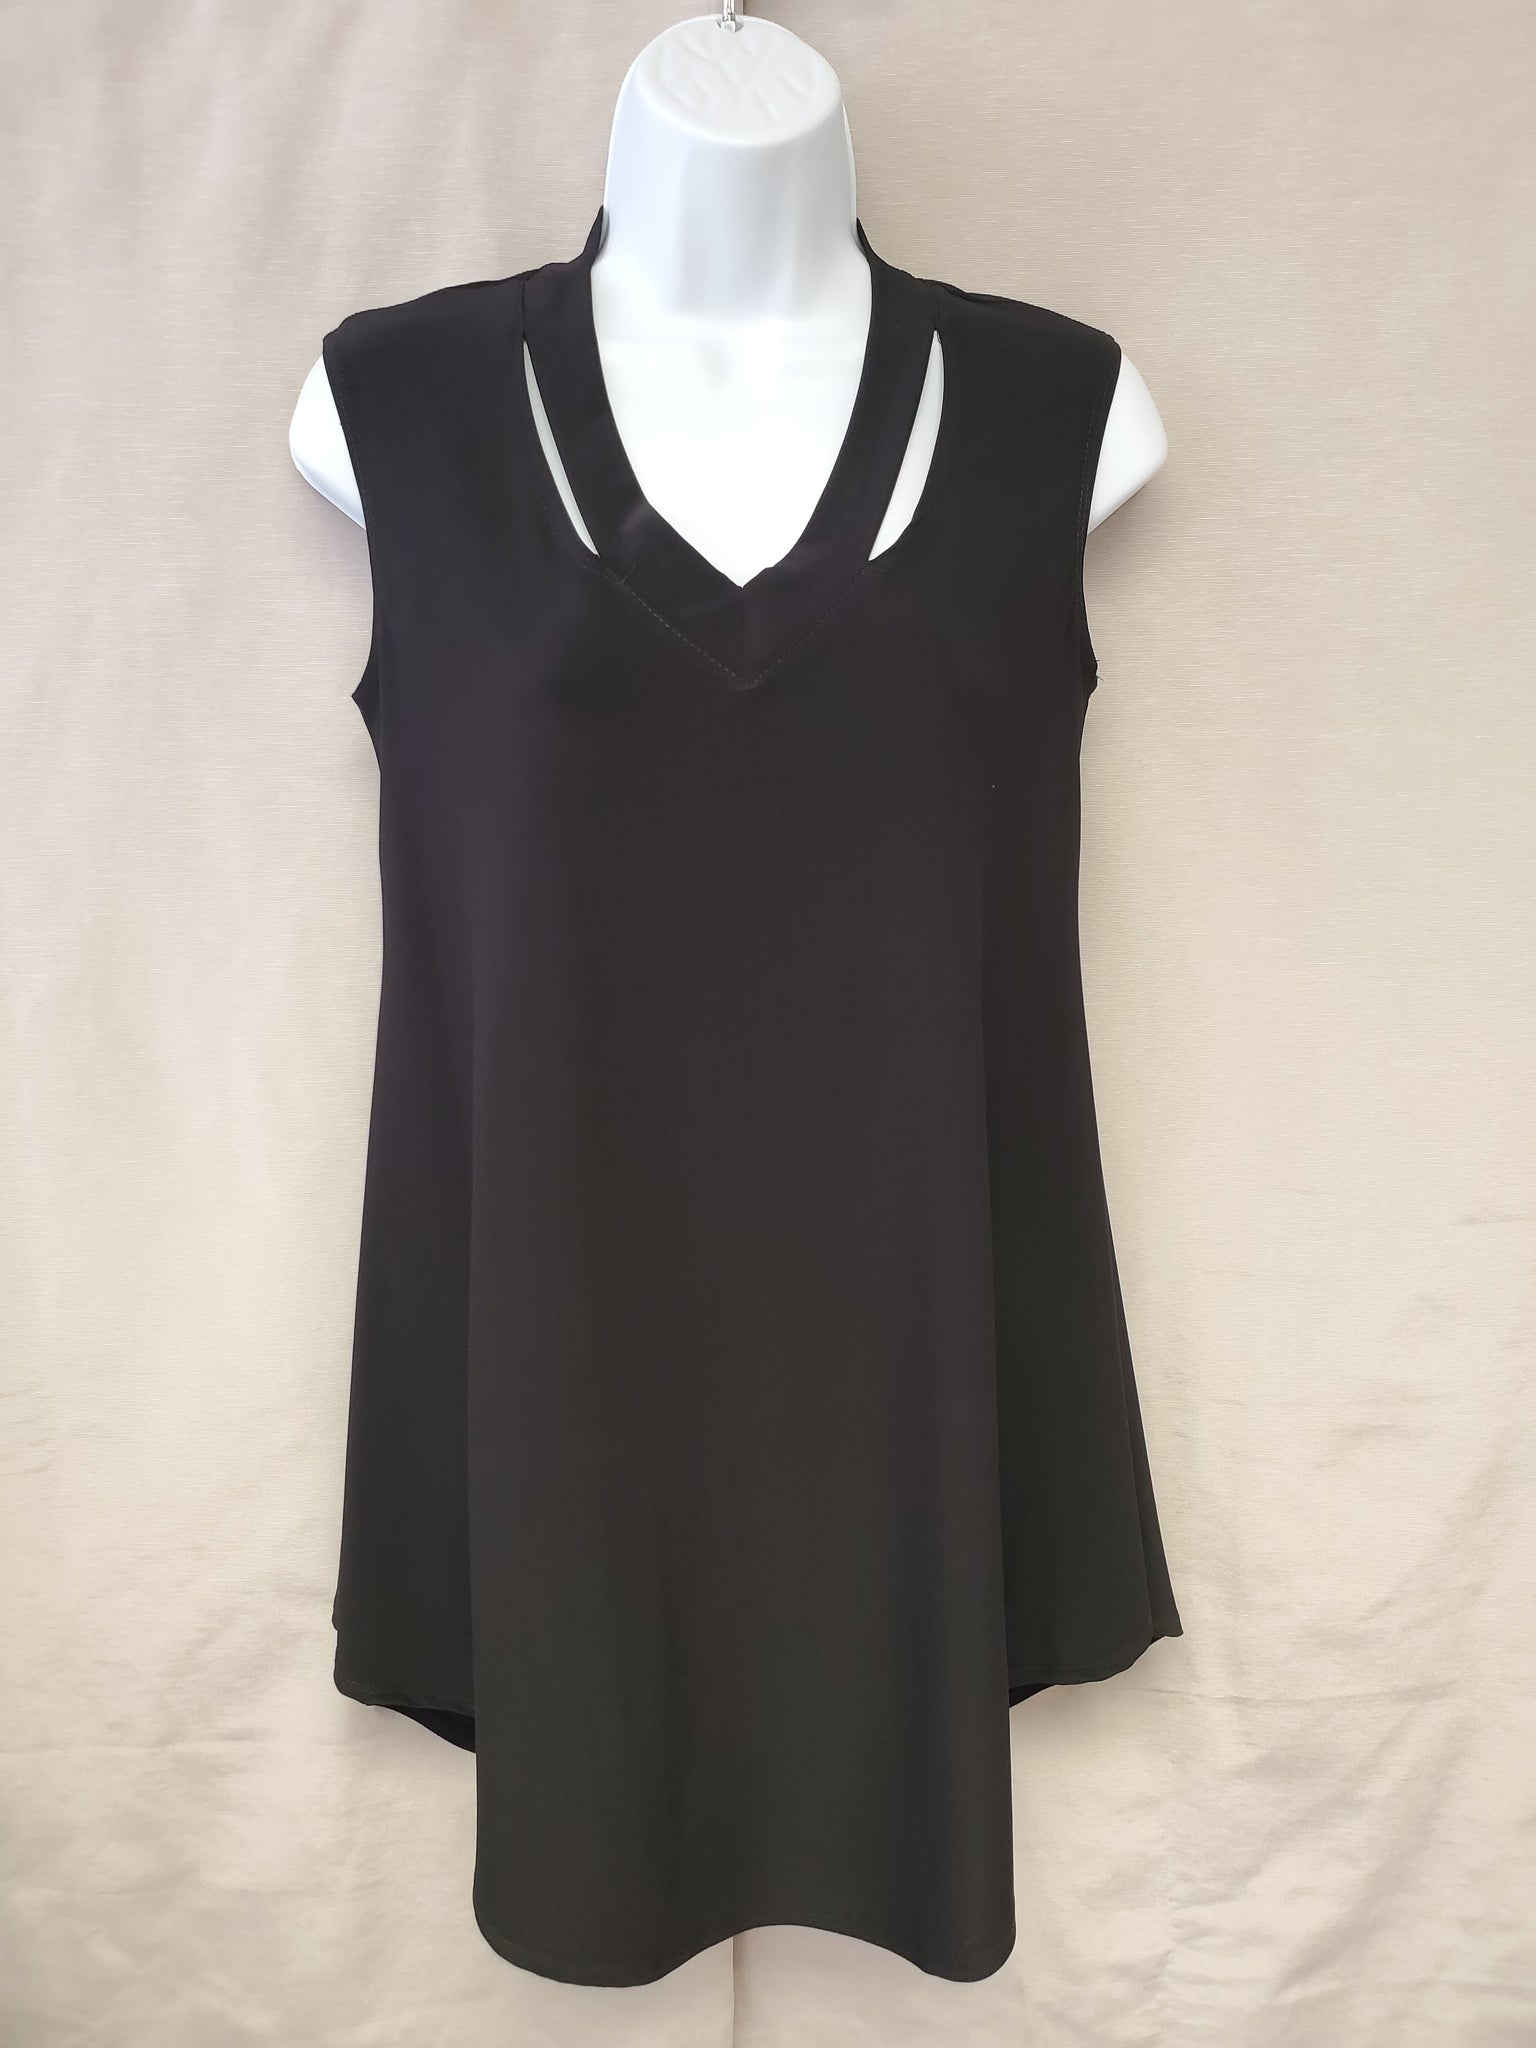 Sleeveless Top – Black